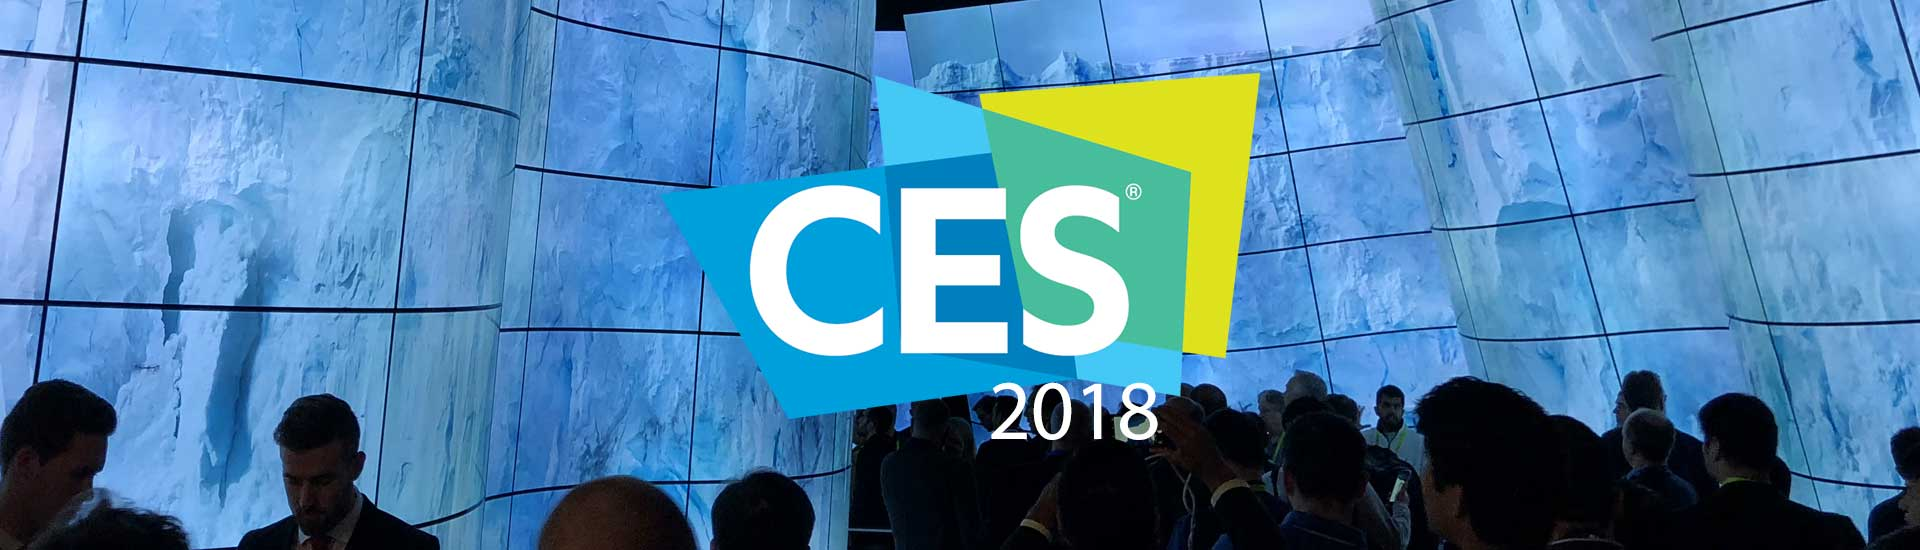 CES 2018 Highlights